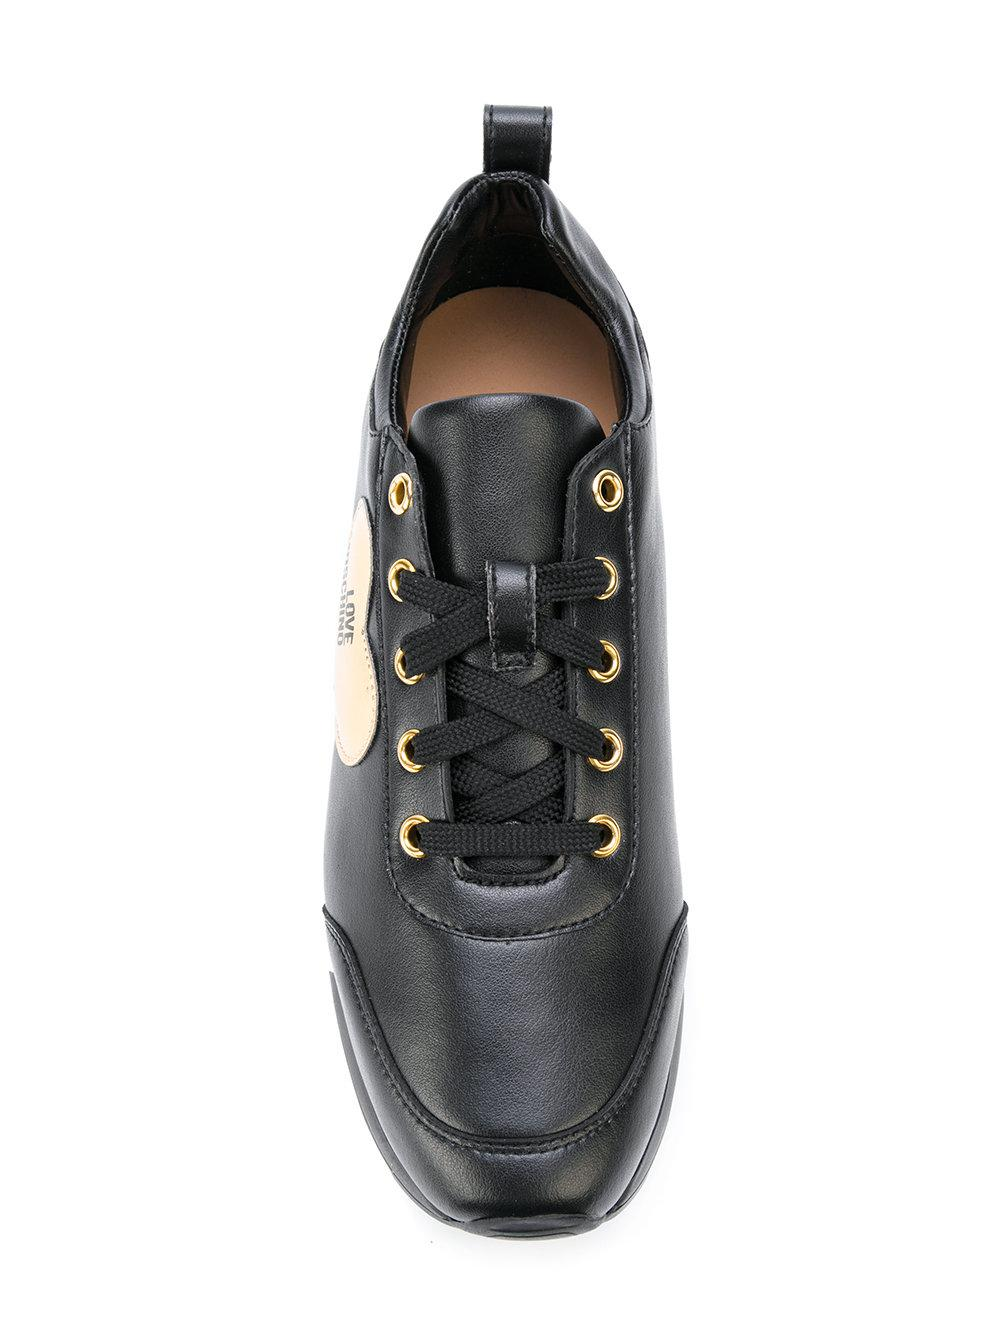 Love Moschino Leather Heart Sneakers in Black